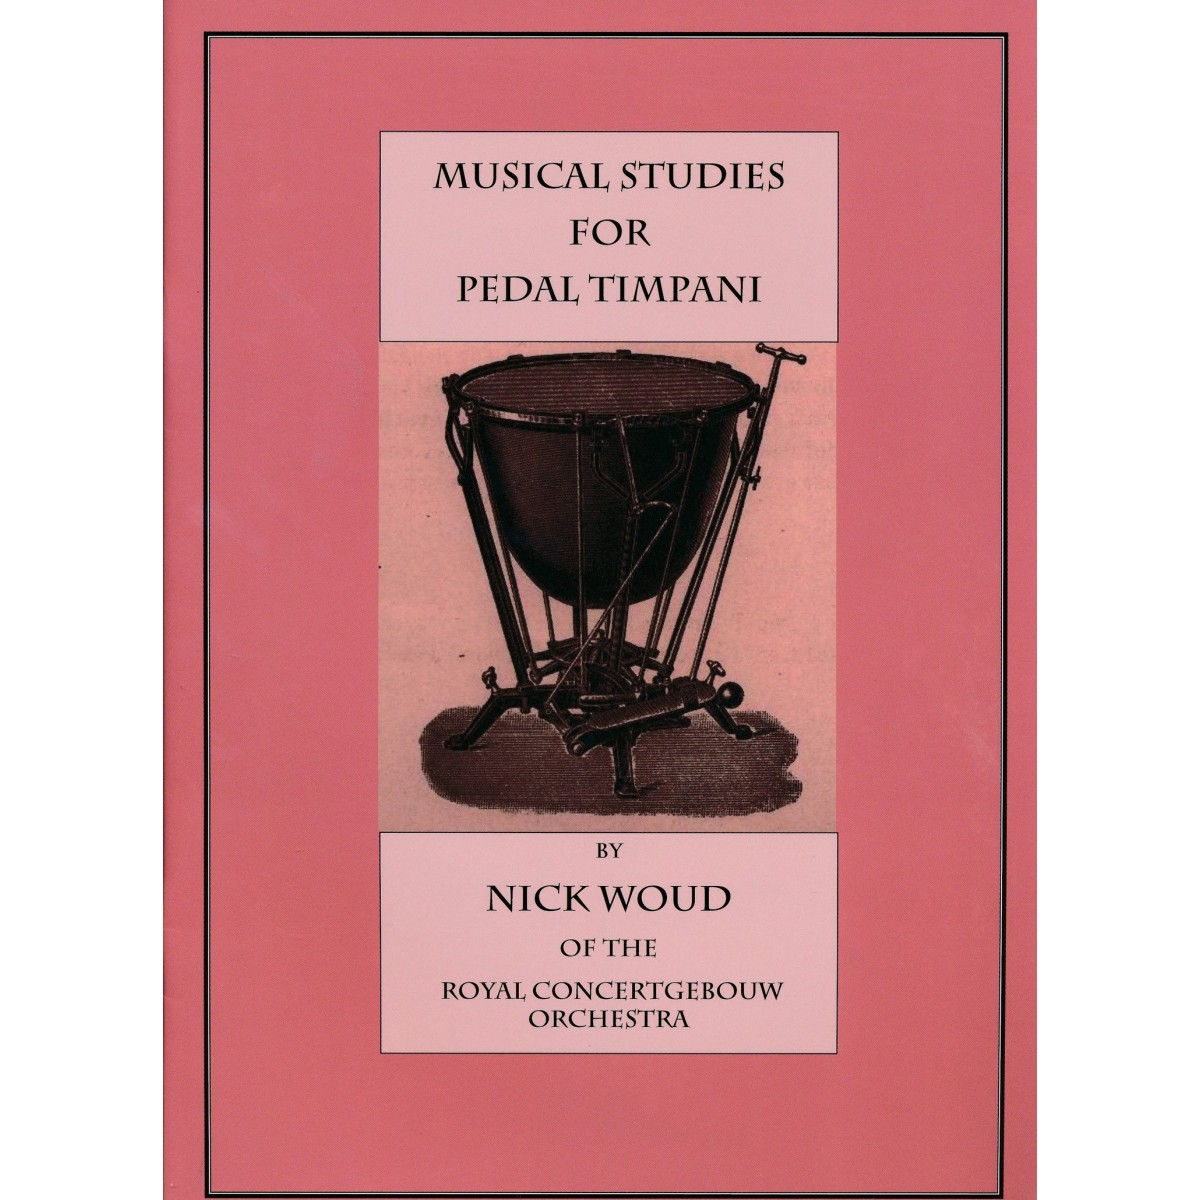 Musical Studies For Pedal Timpani by Nick Woud